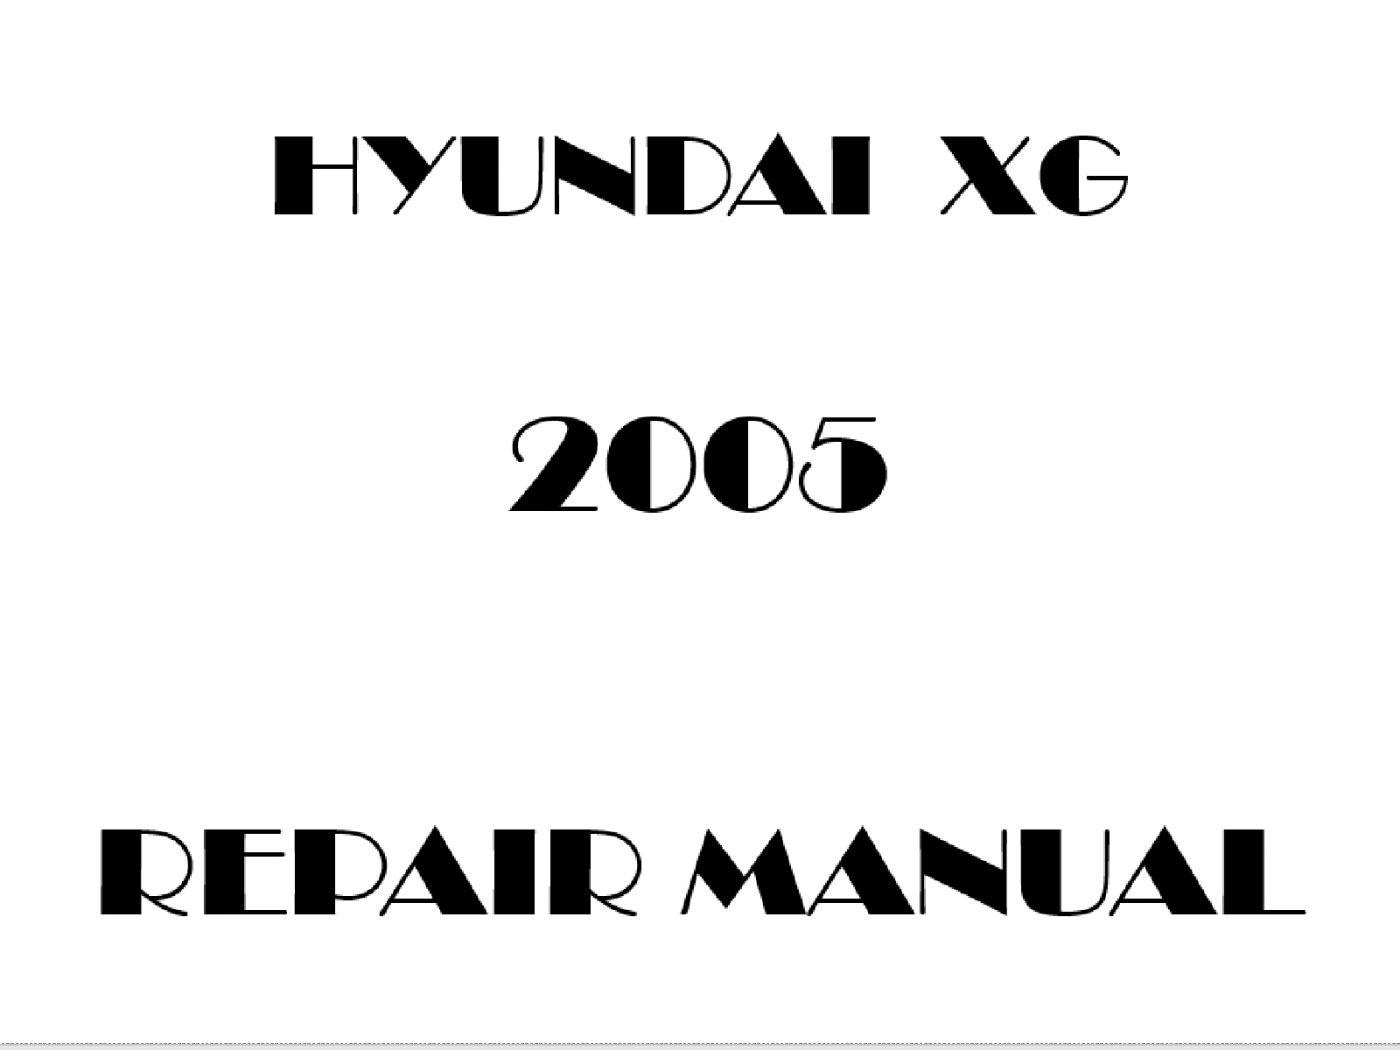 2005 Hyundai XG repair manual